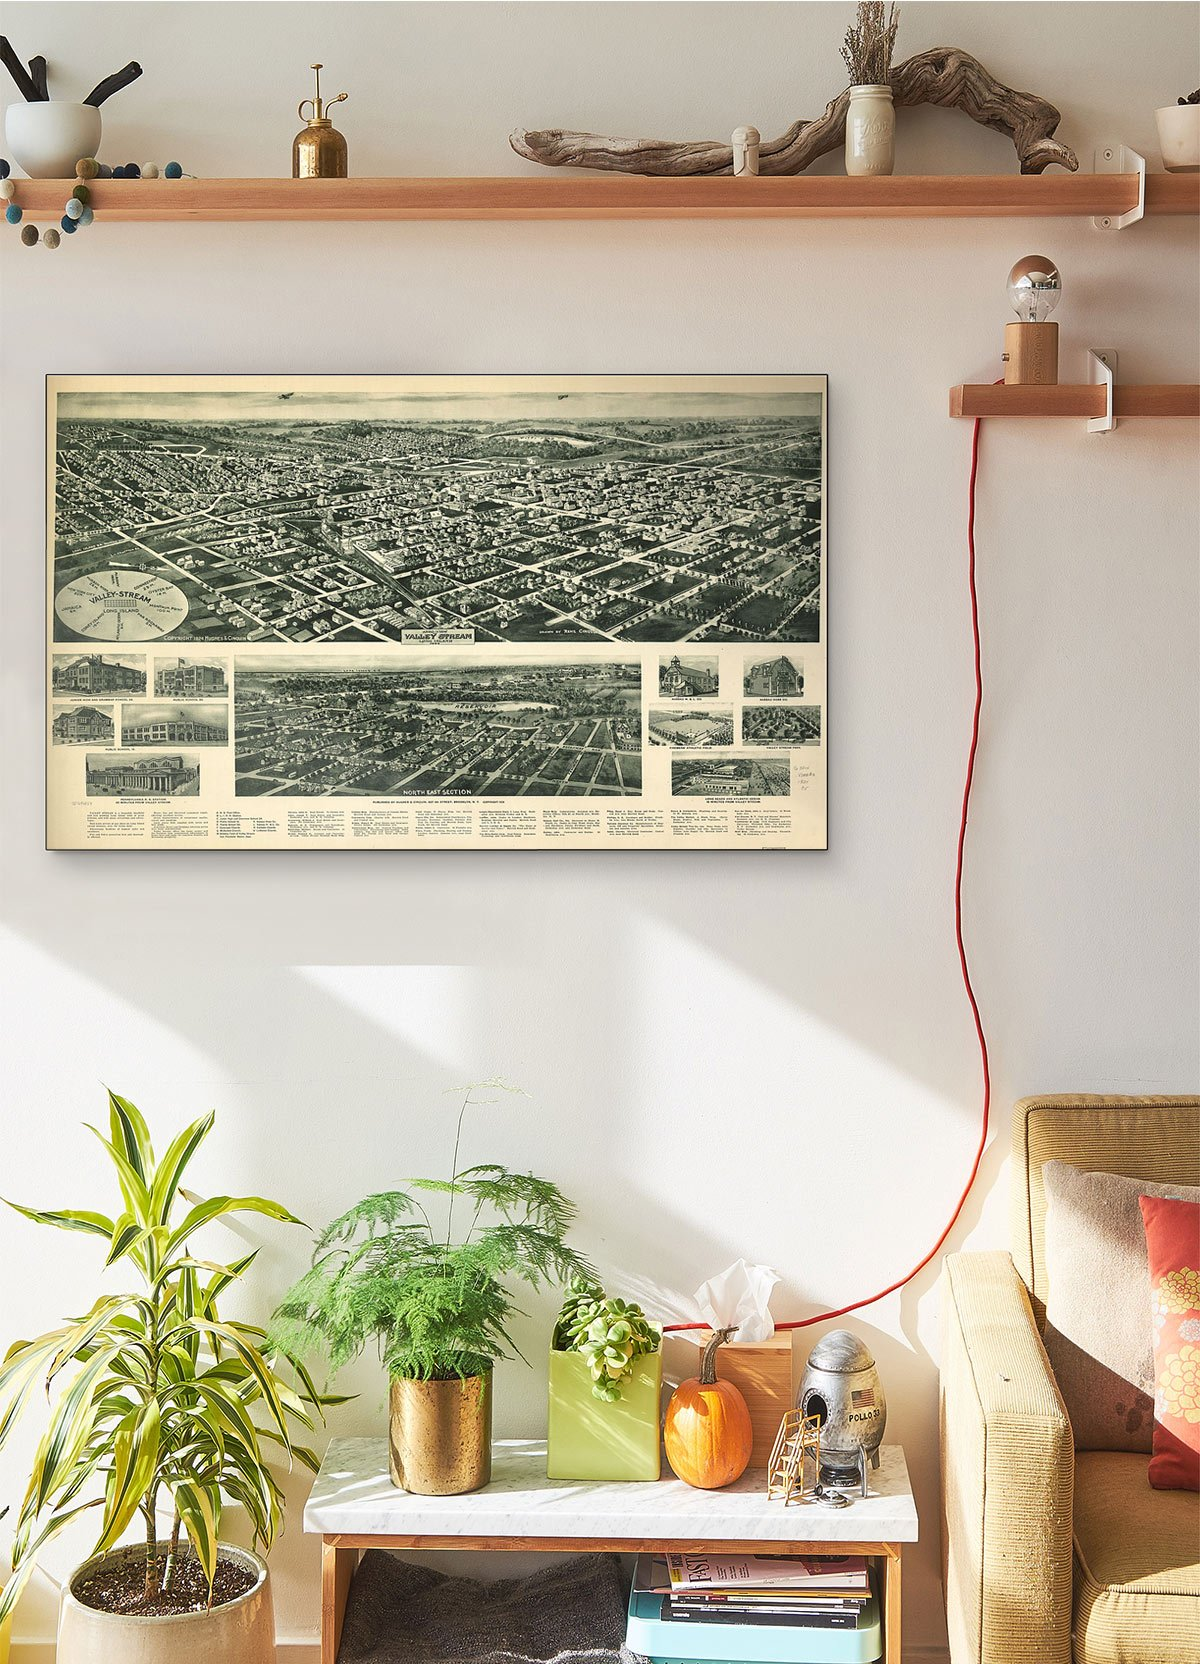 Aero View Of Valley Stream Long Island 1924 LARGE Vintage Map